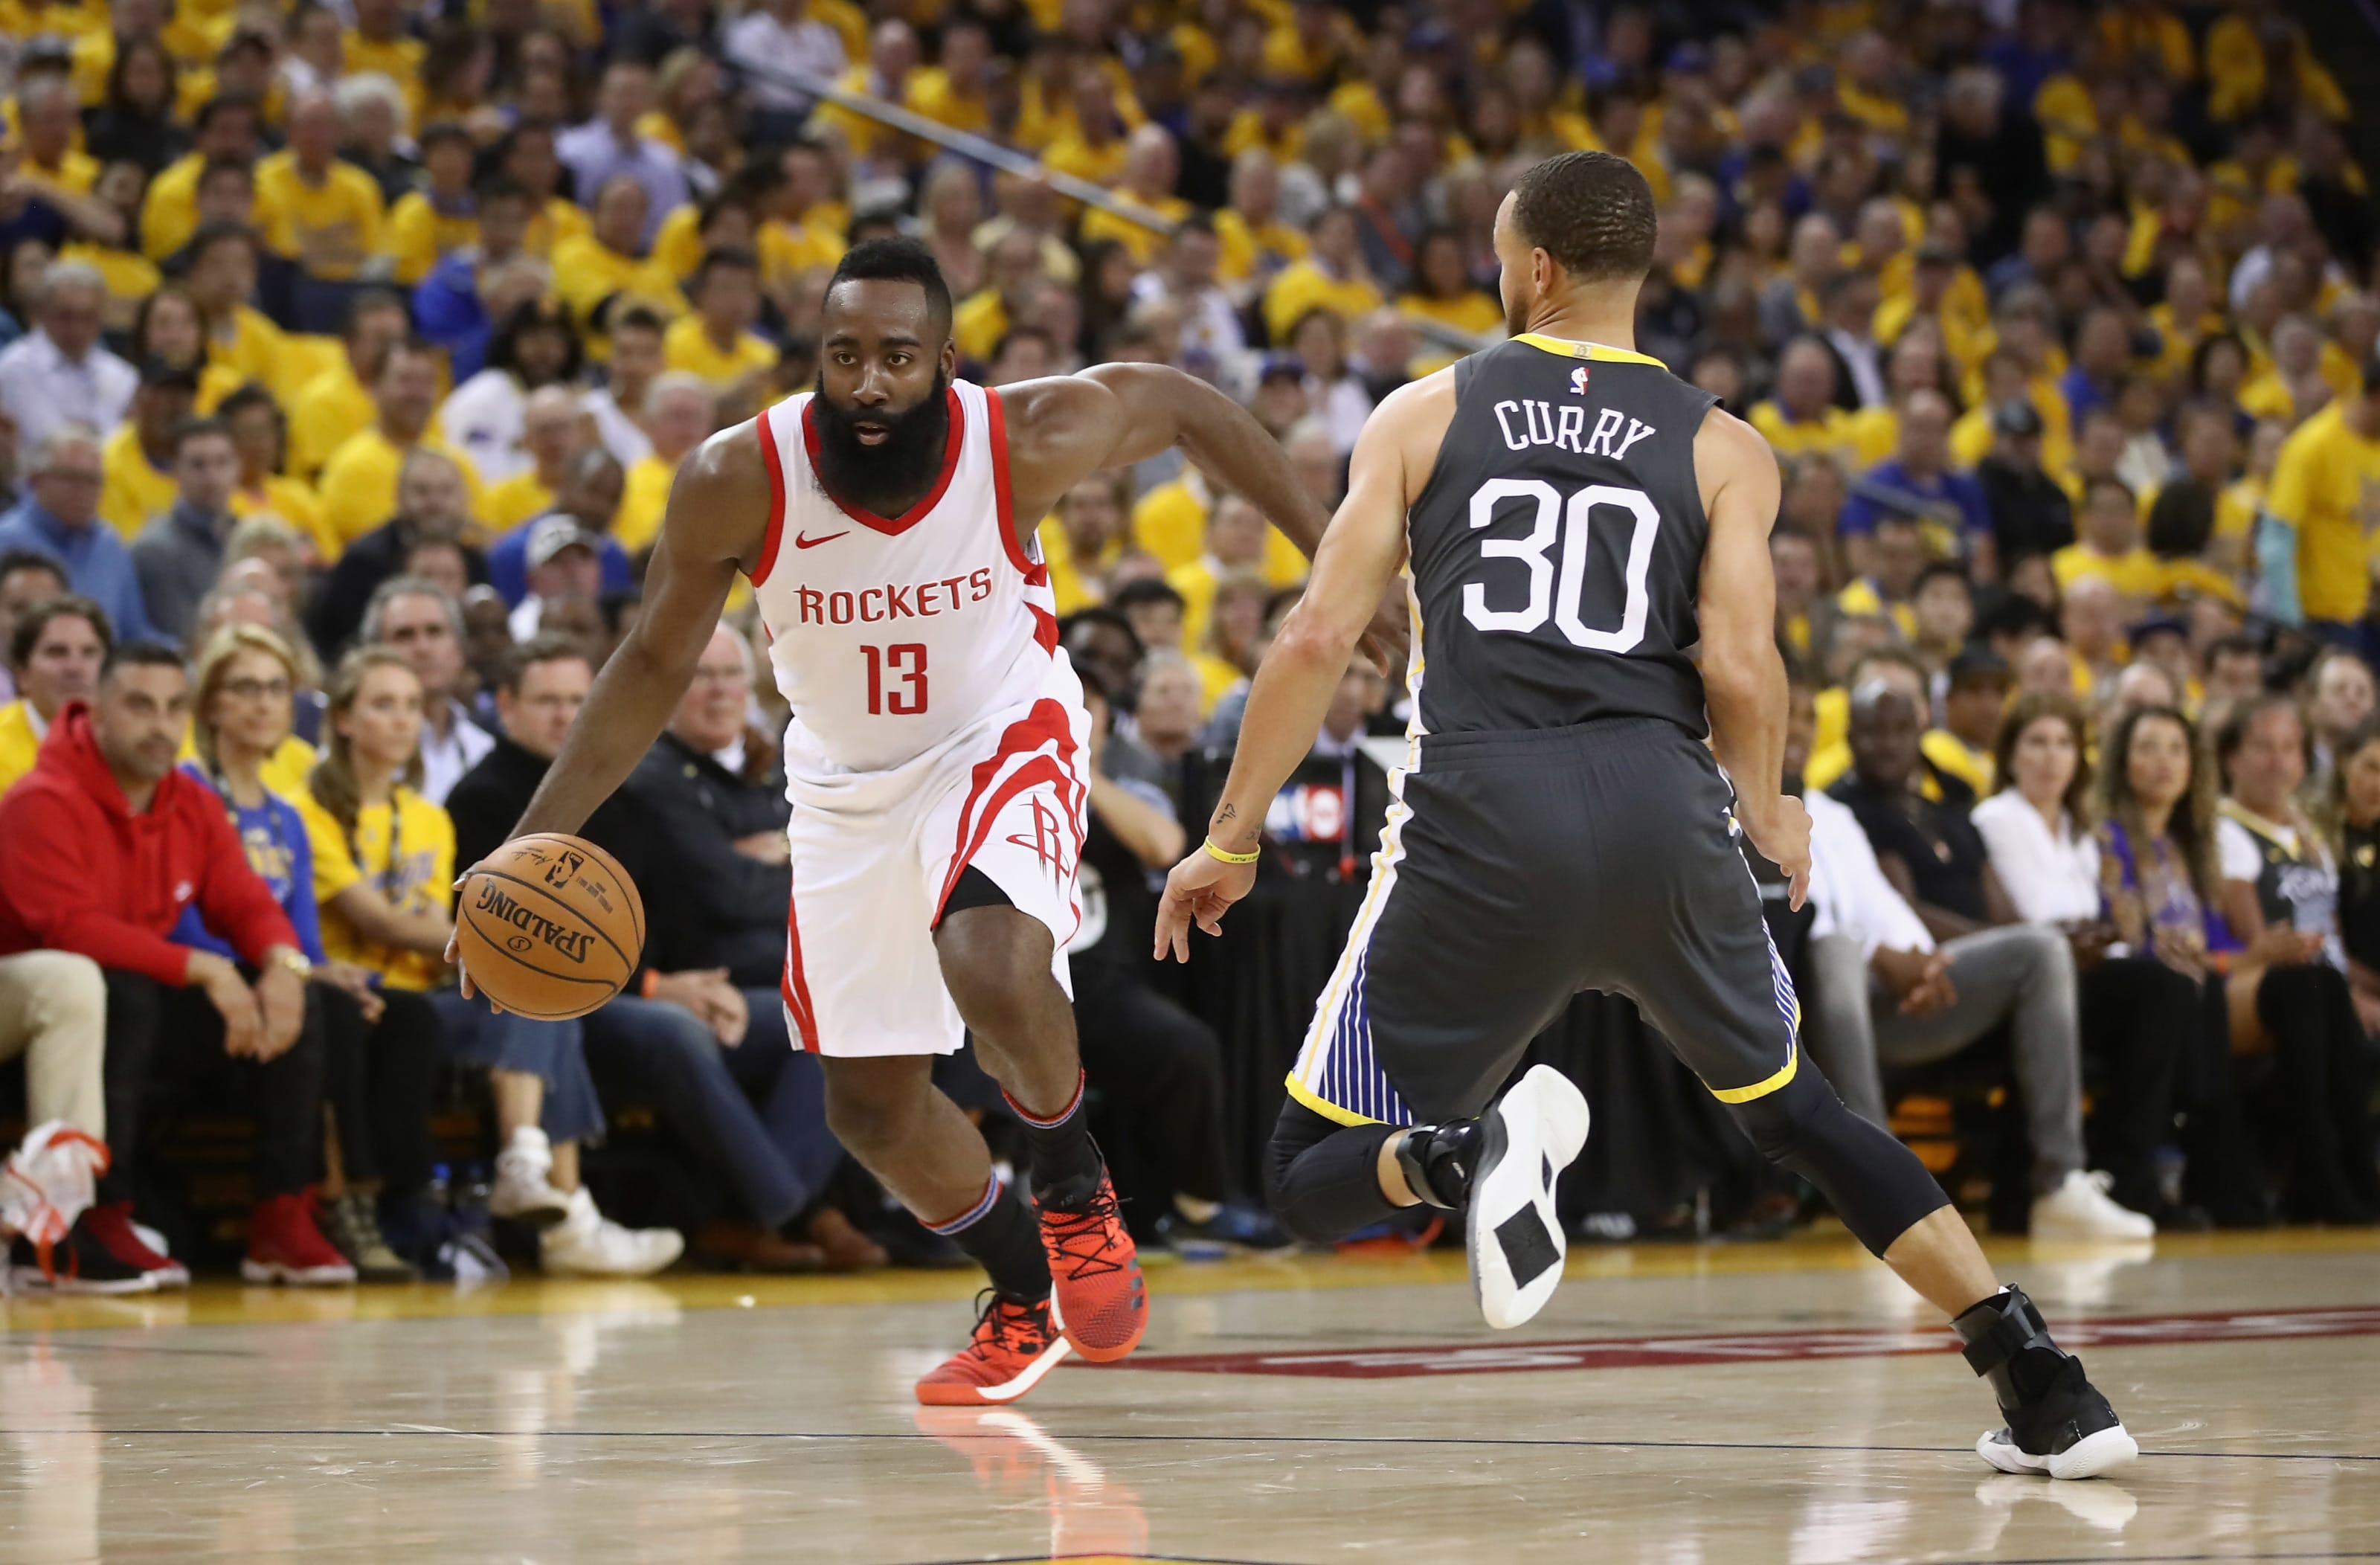 James Harden #13 of the Houston Rockets is guarded by Stephen Curry #30 of the Golden State Warriors